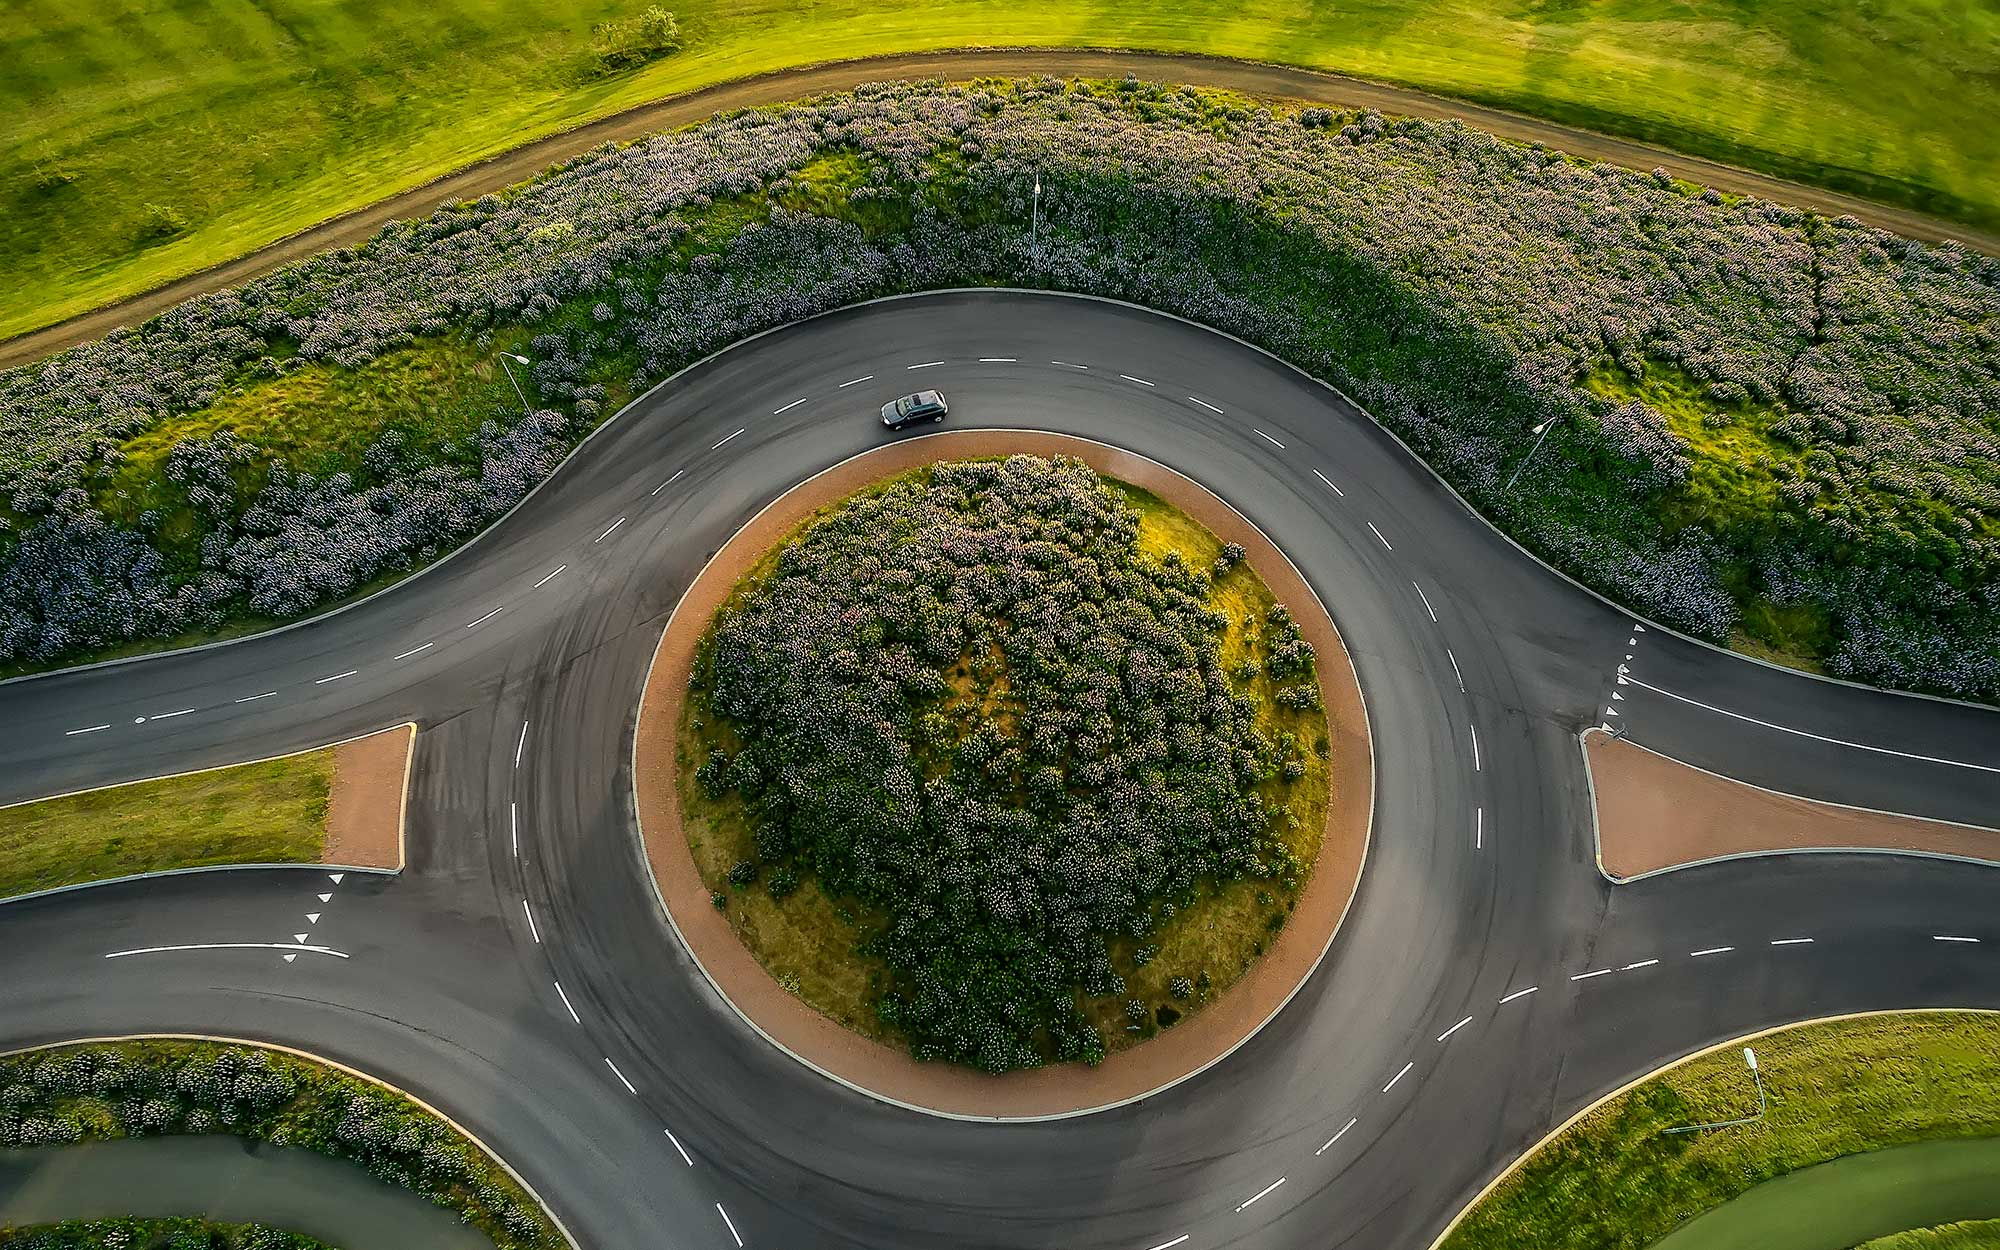 Iceland Drone Photos - Roundabout